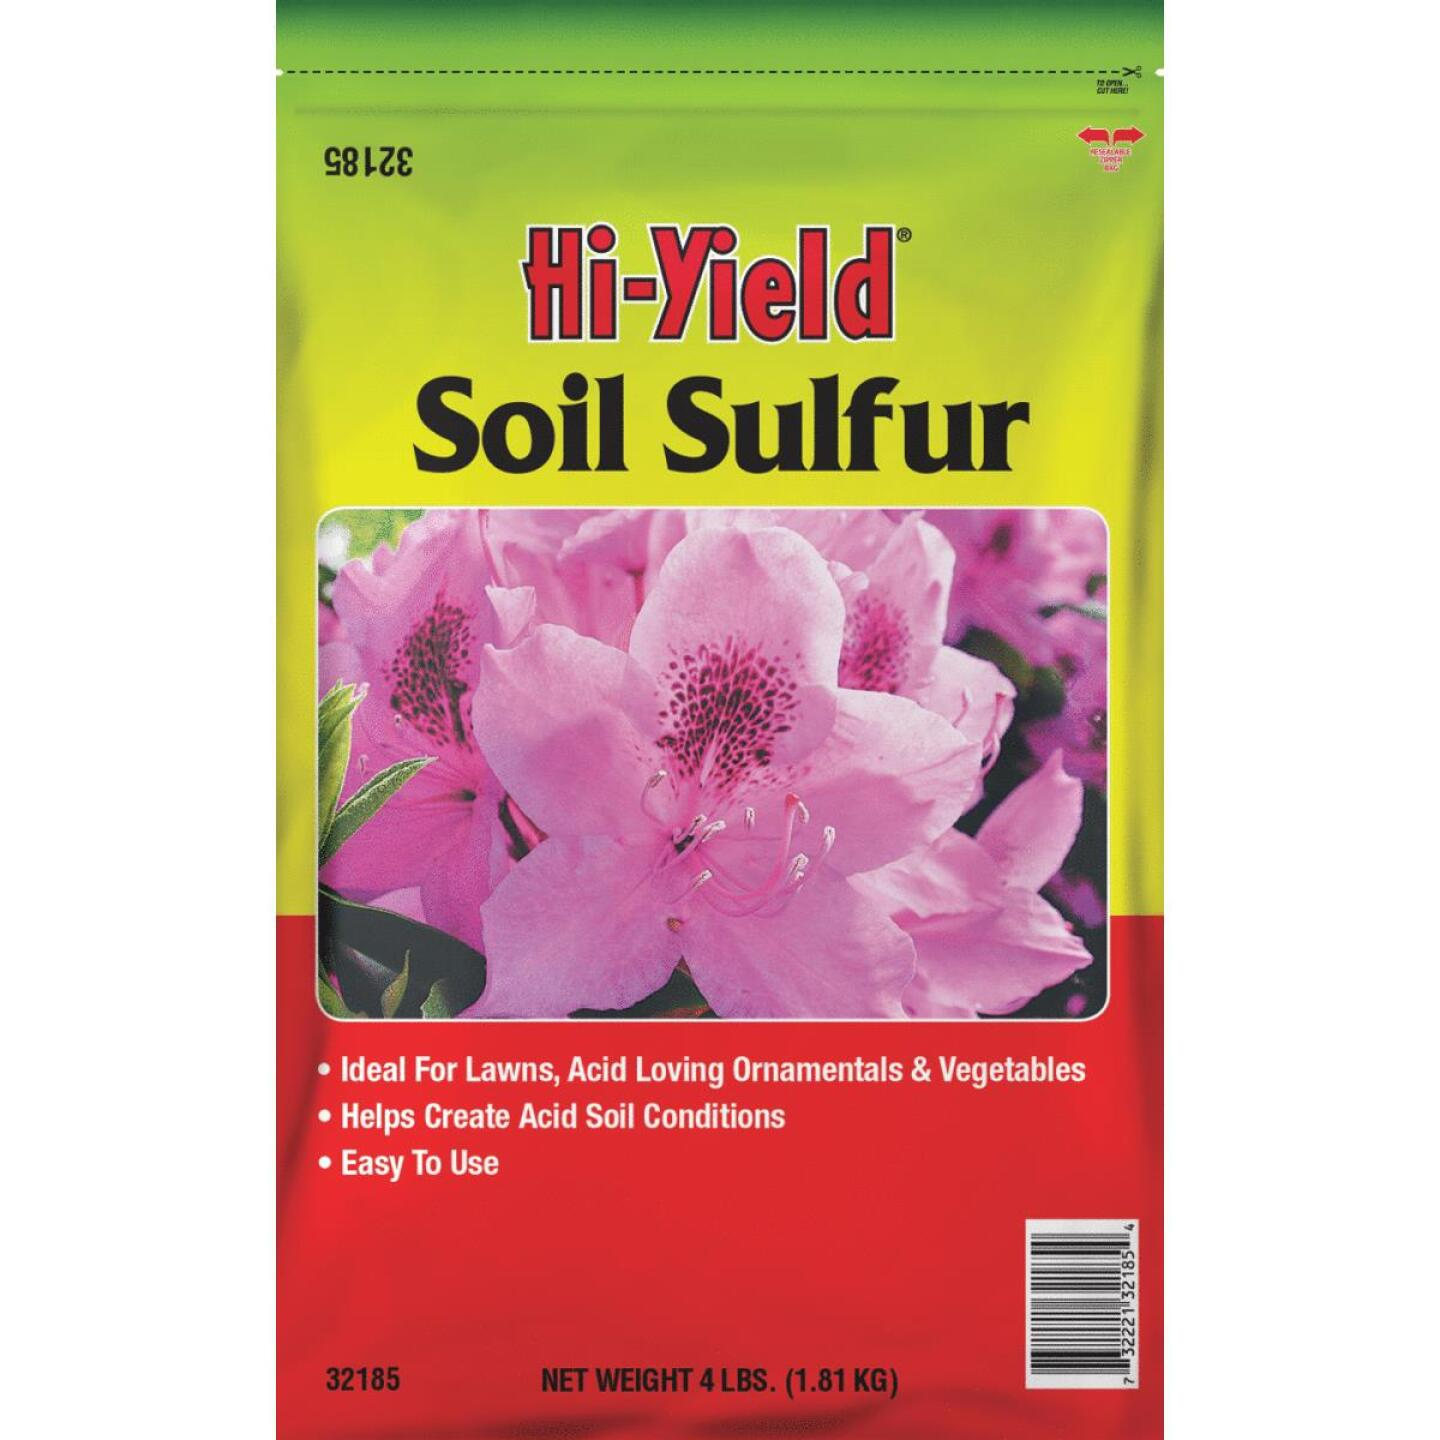 Hi-Yield 4 Lb. 400 Ft. Coverage Soil Sulfur Image 1